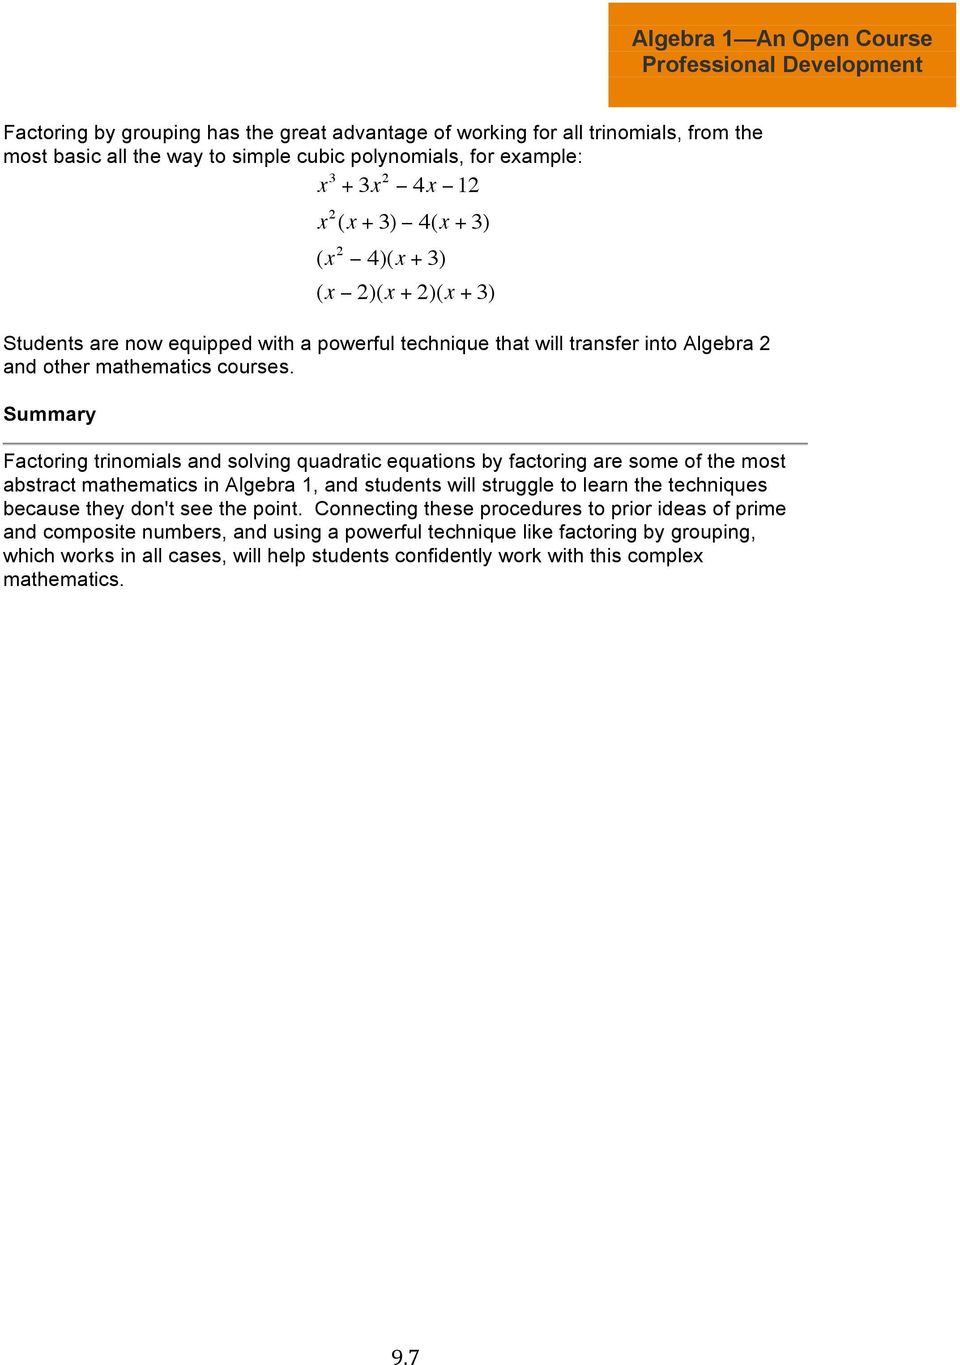 Summary Factoring trinomials and solving quadratic equations by factoring are some of the most abstract mathematics in Algebra 1, and students will struggle to learn the techniques because they